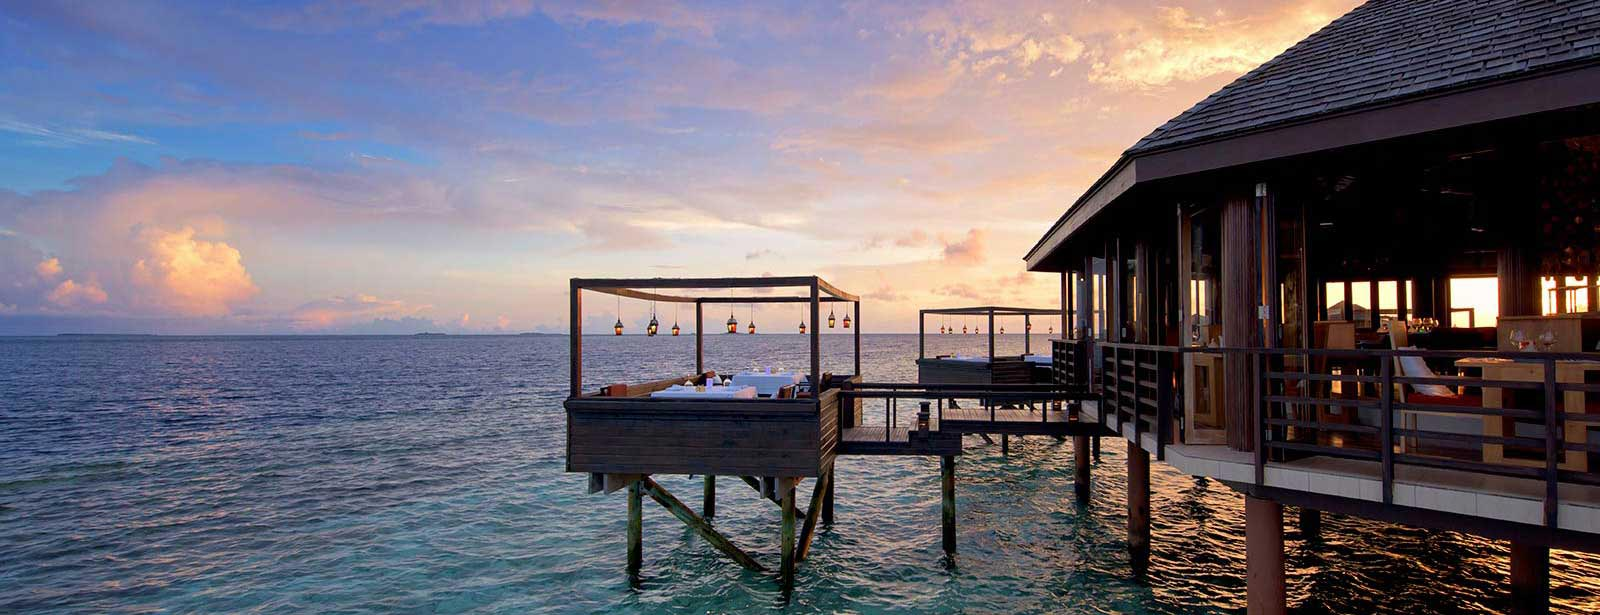 Maldives Resort Lily Beach